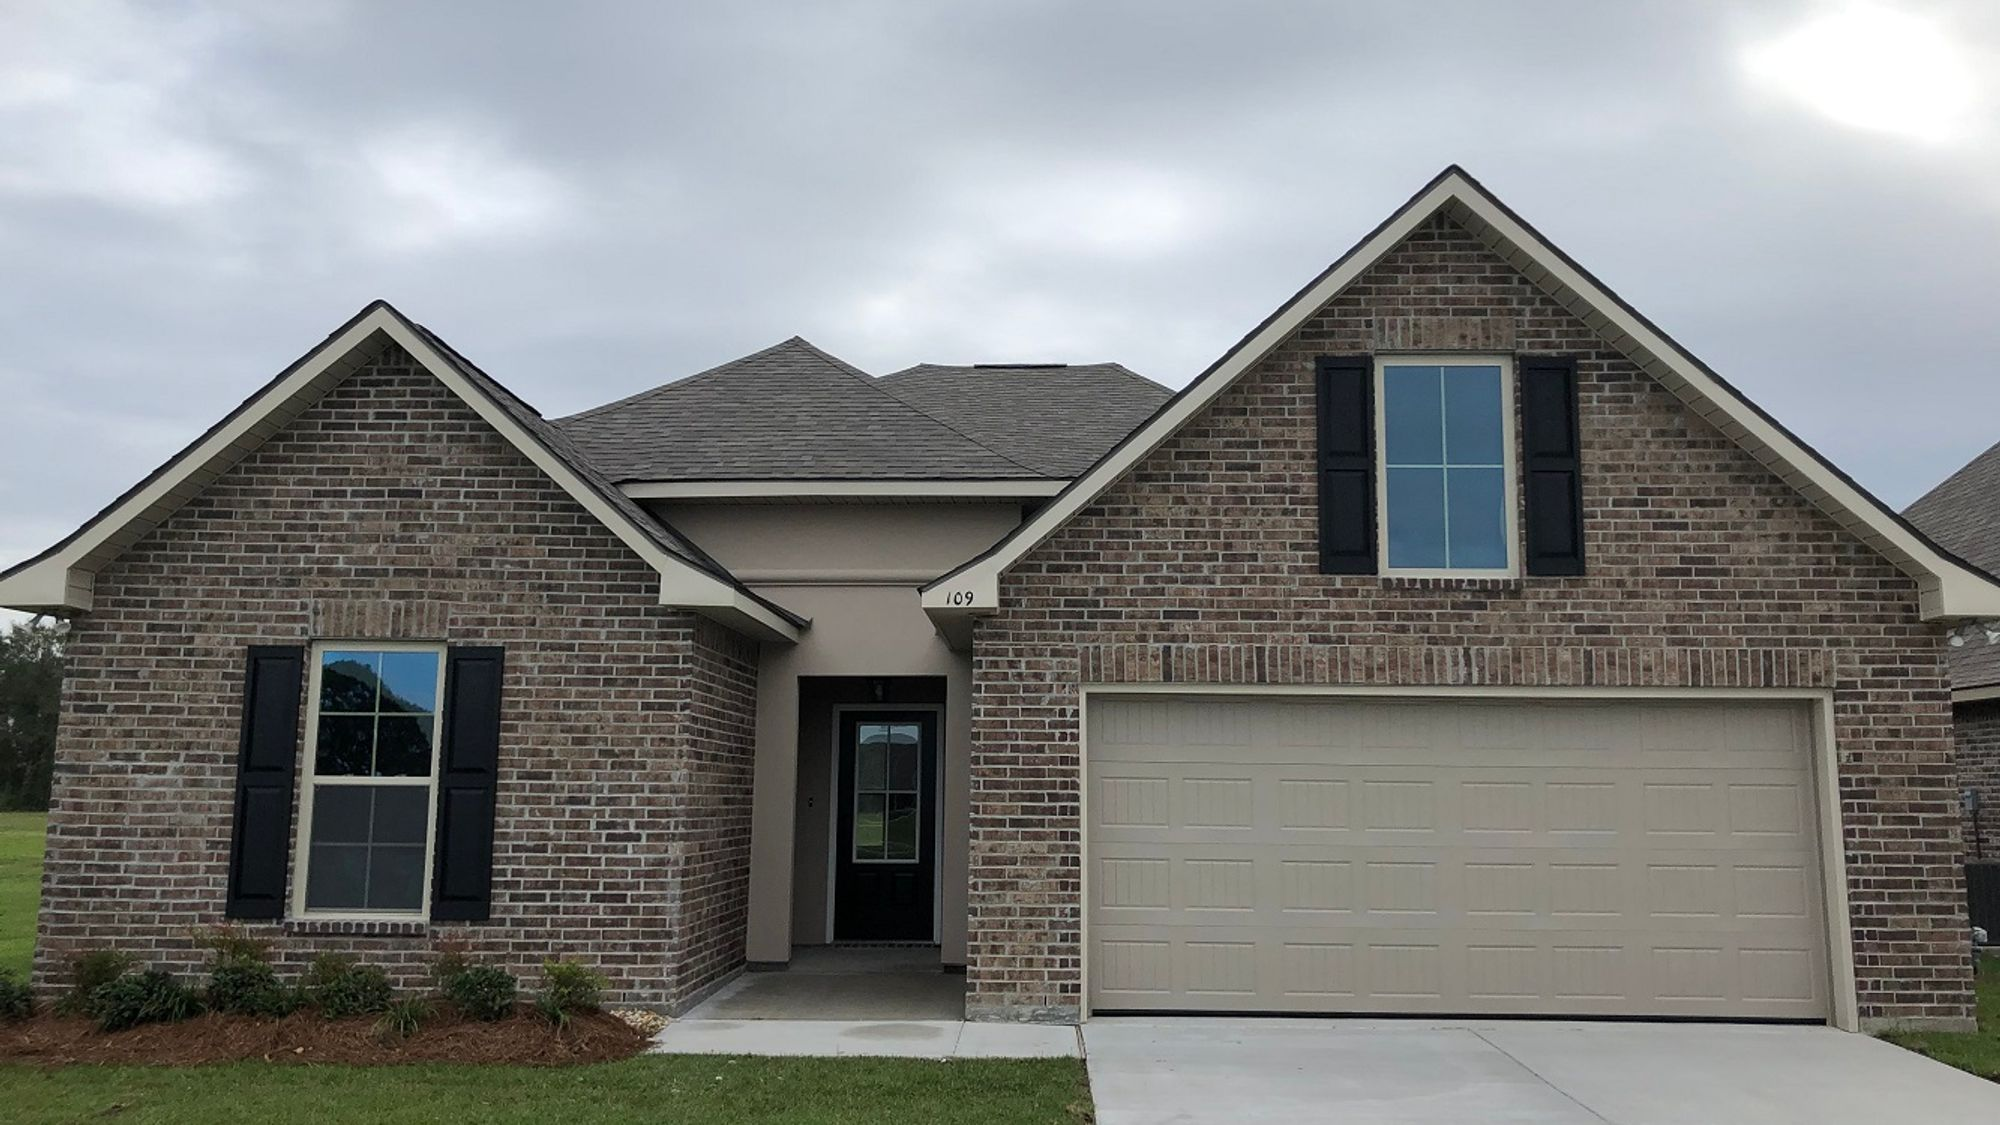 Front View - Sugar Ridge Community - DSLD Homes - Youngsville